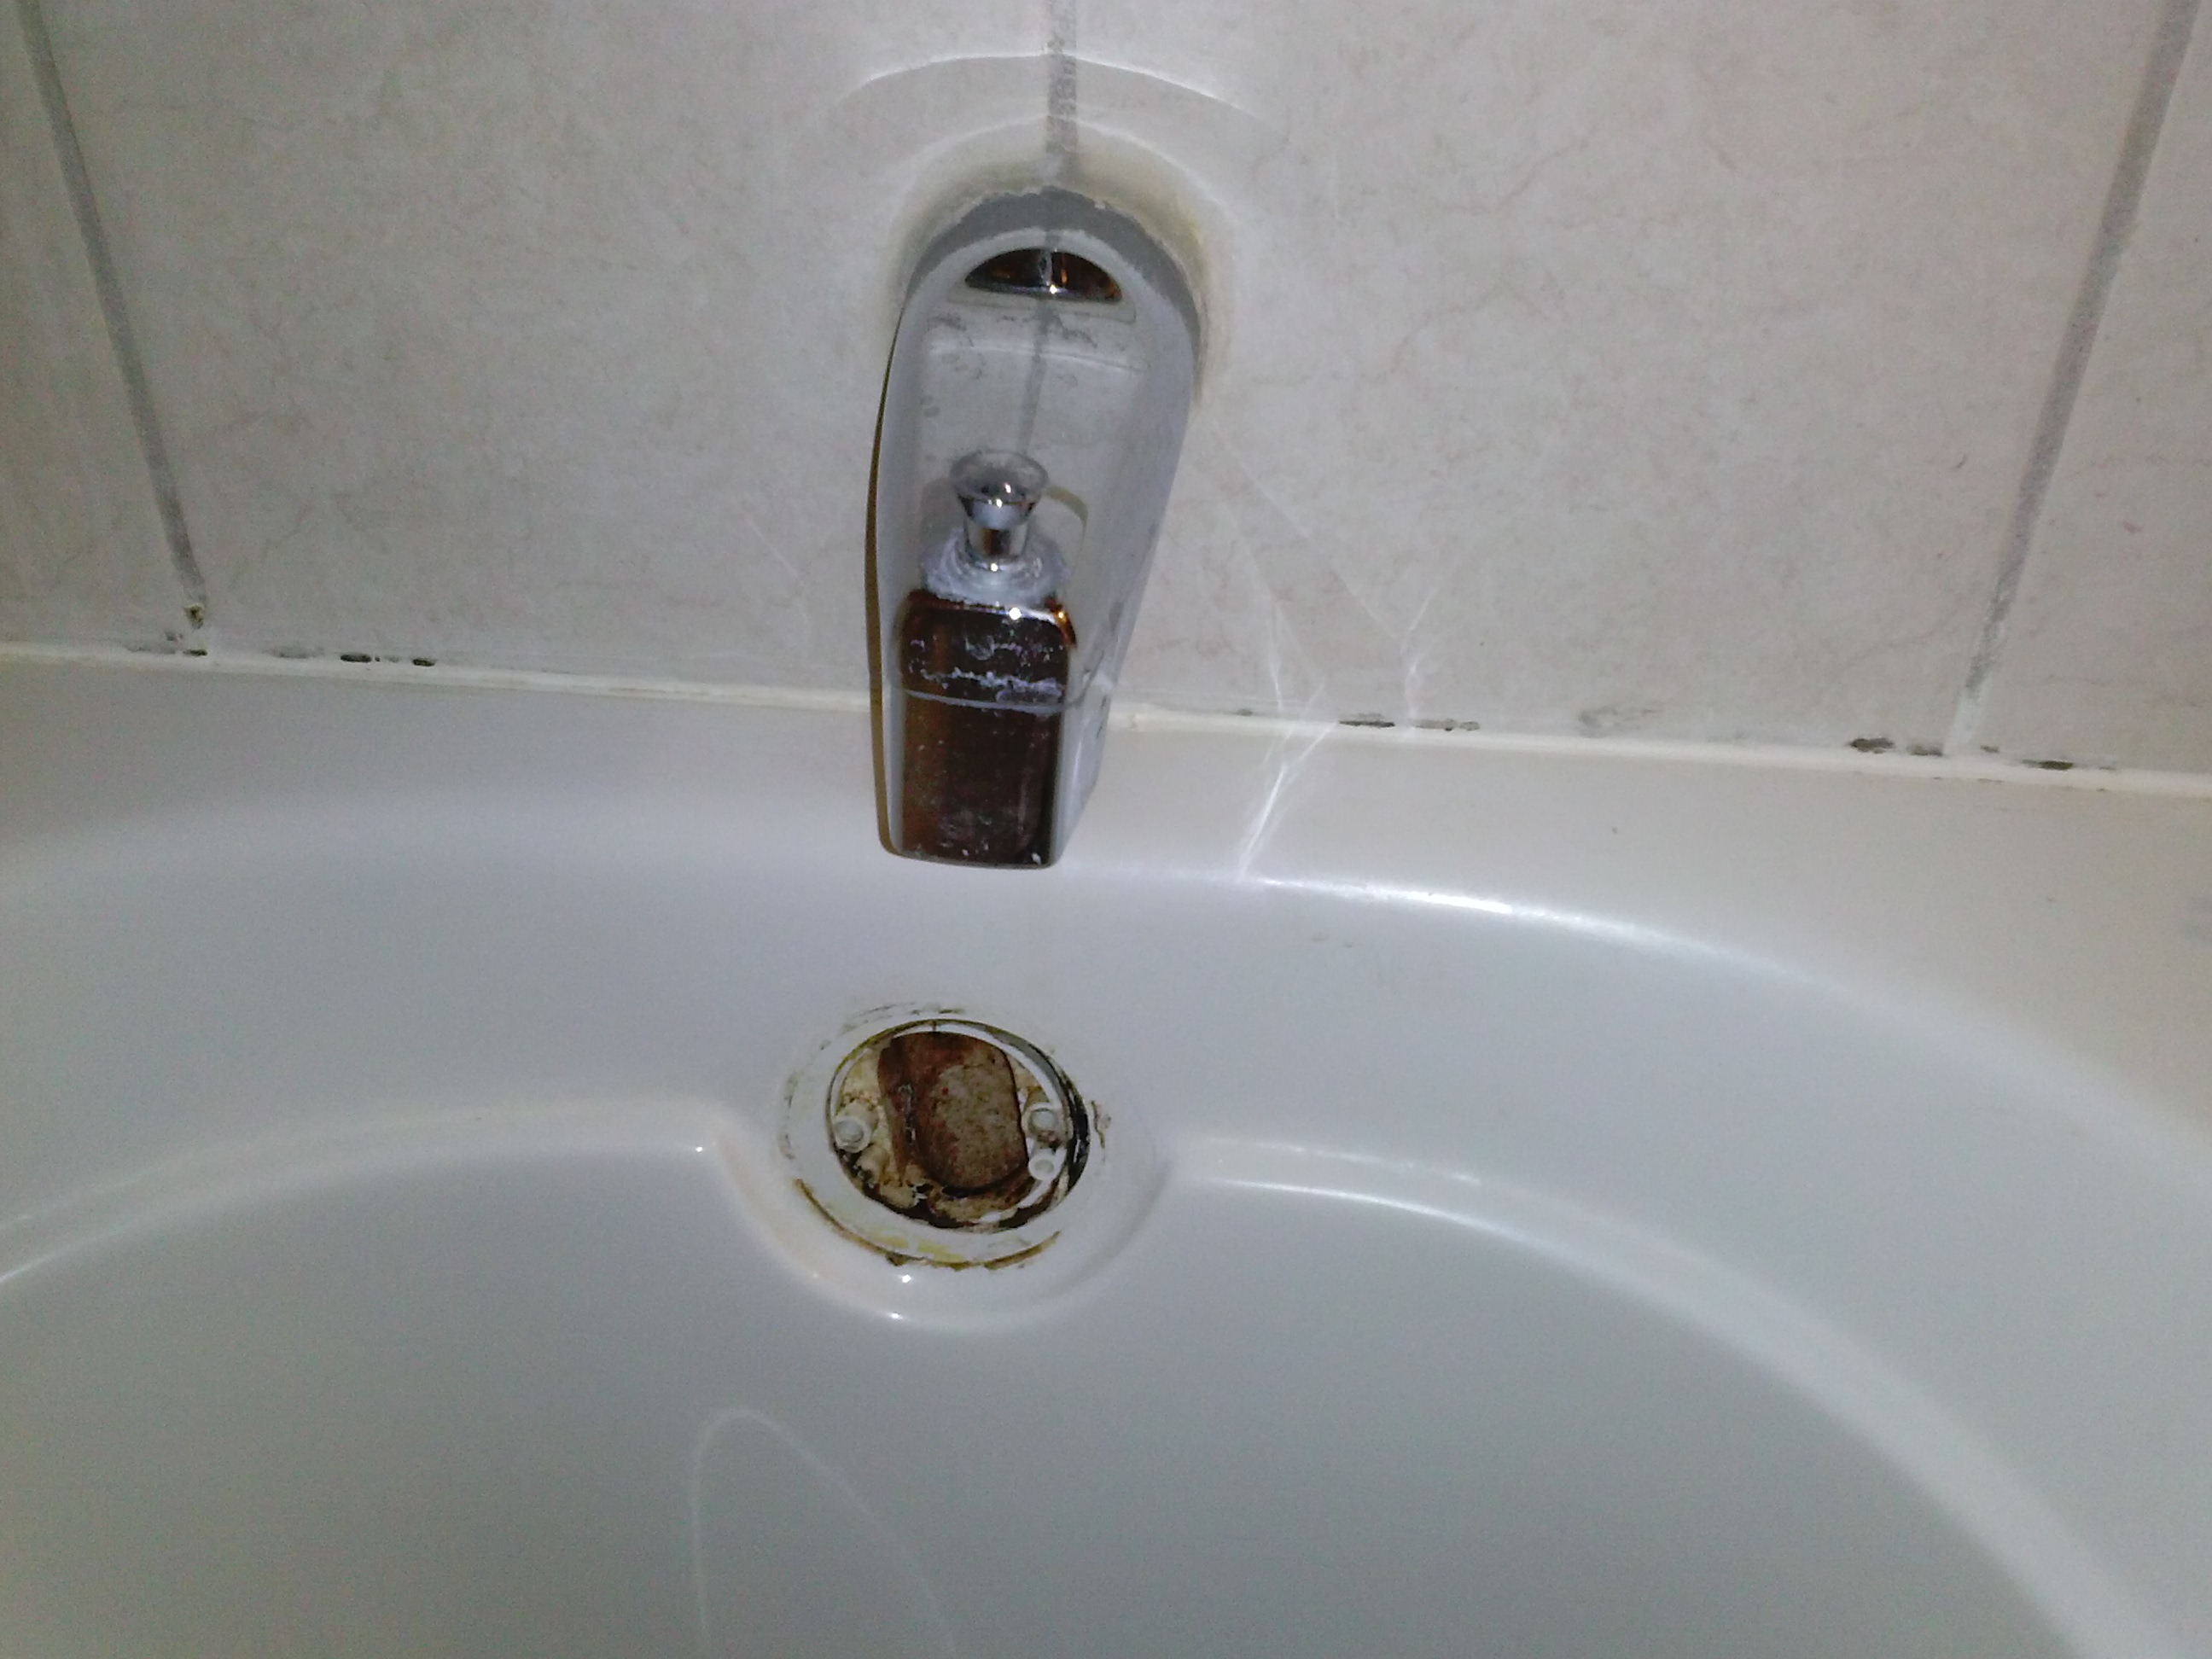 How to clean out a tub drain - No Nonsense Landlord